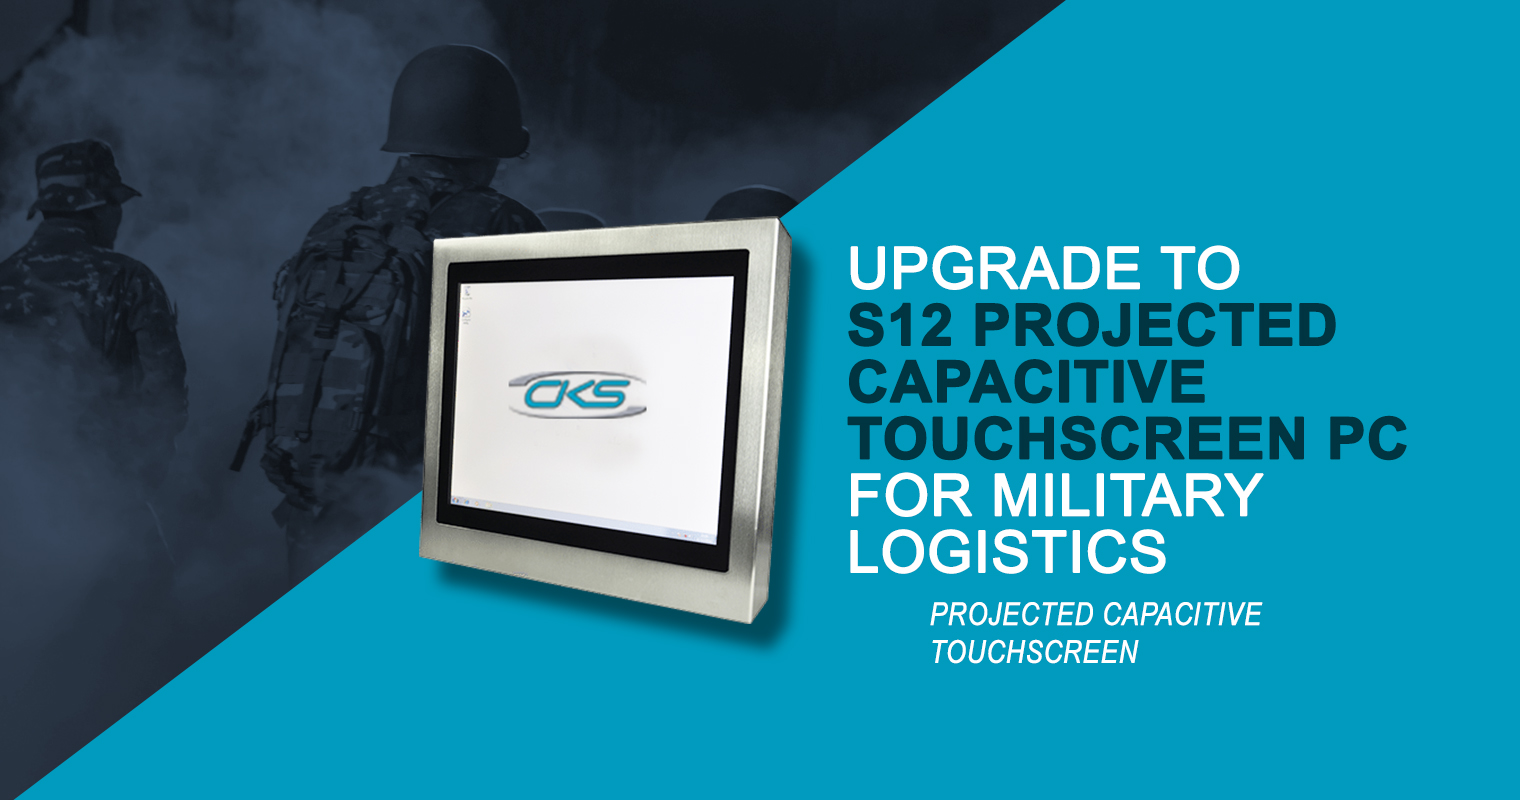 Upgrade-to-S12-Projected-Capacitive-Touchscreen-PC-for-Military-Logistics